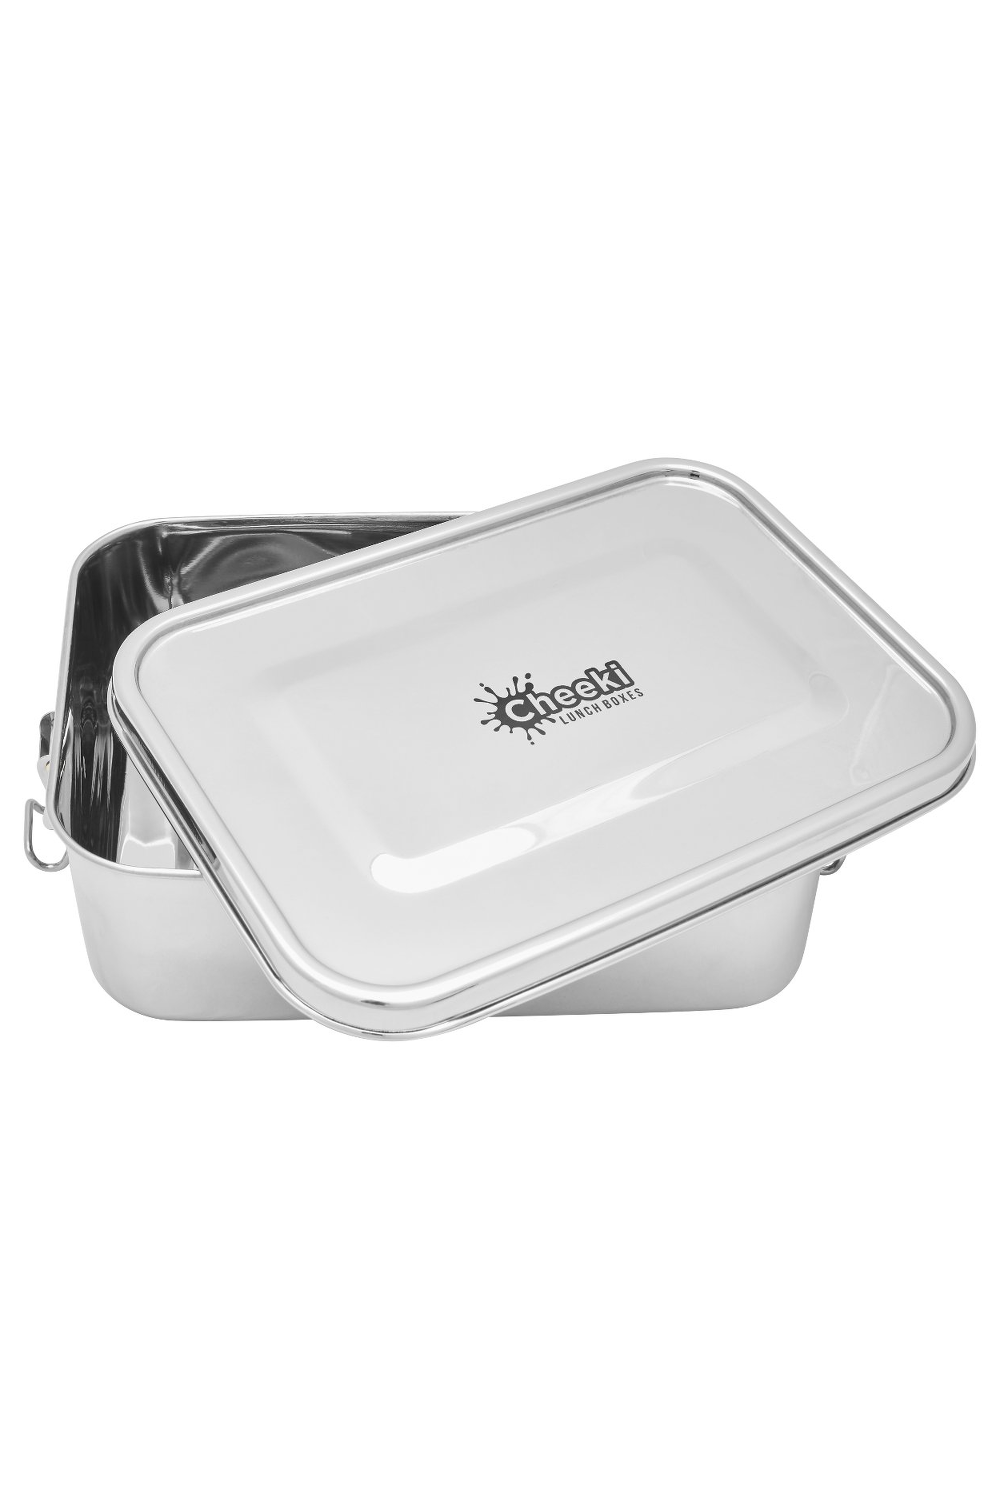 Cheeki | 500ml lunch box | Plastic Free Living | Environmentally Friendly Homewares